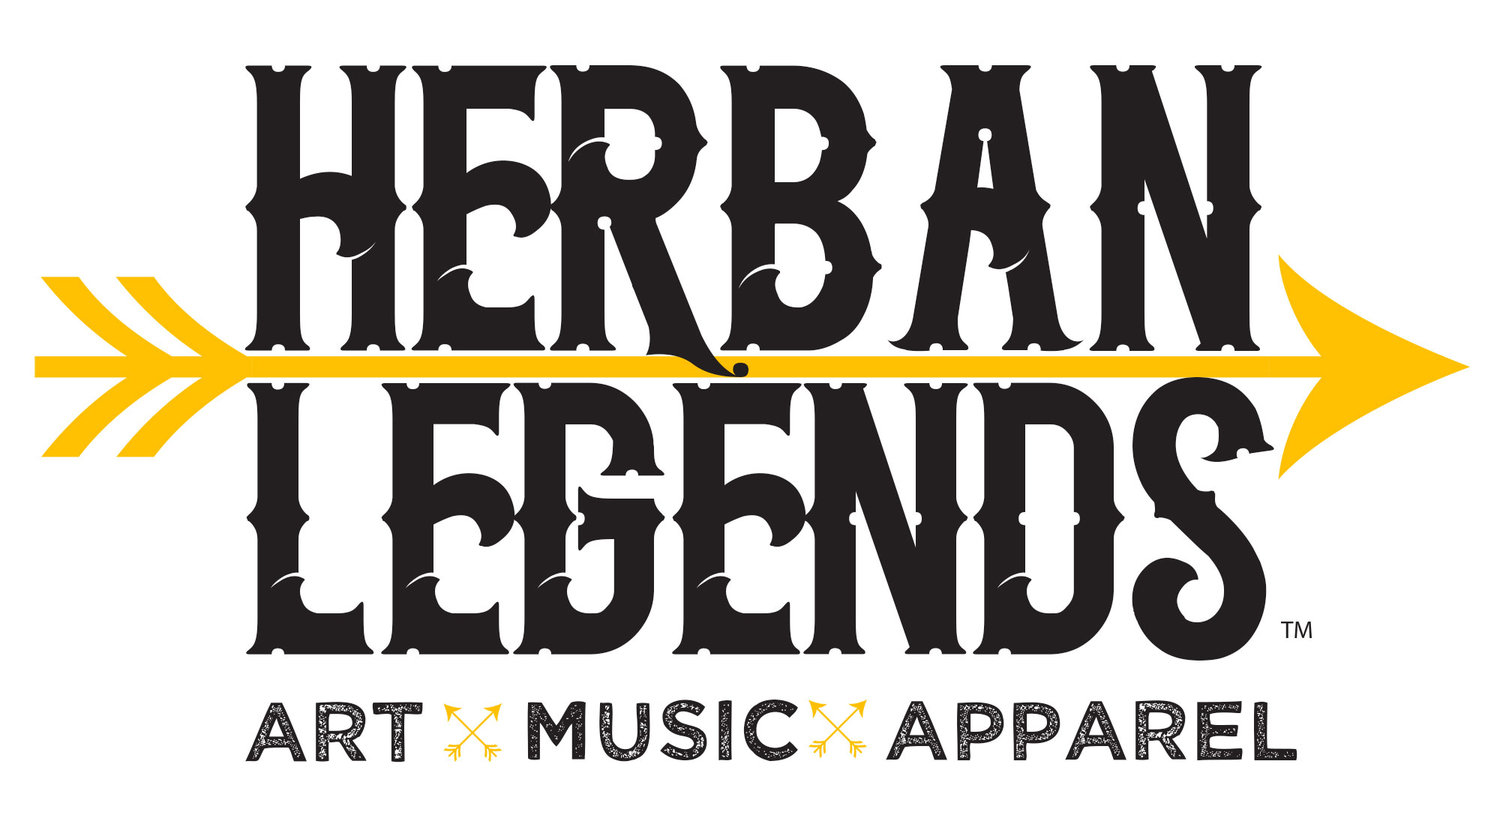 Herban Legends - Art x Music x Apparel